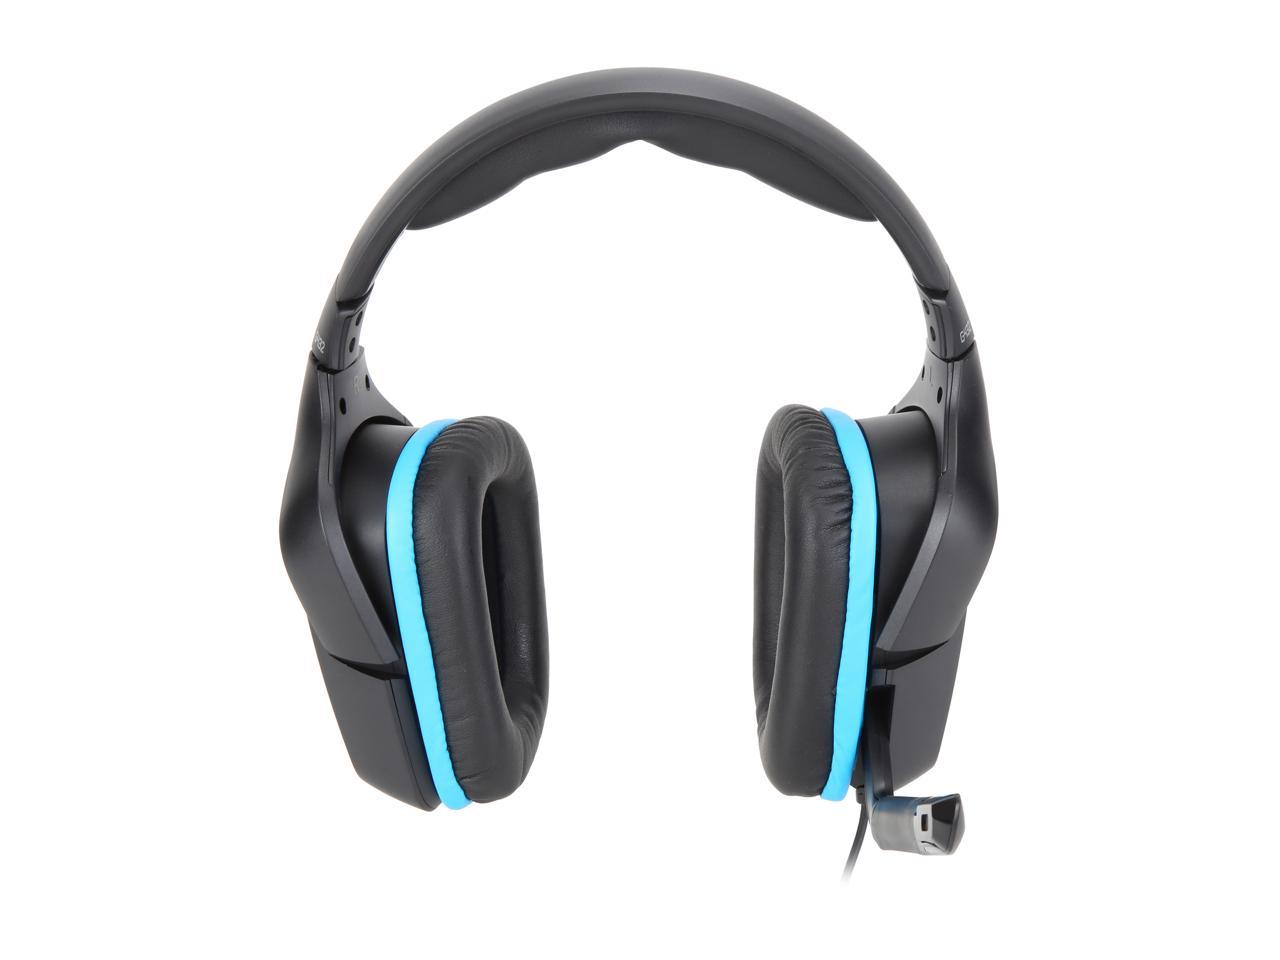 Logitech G432 3.5mm/USB Connector Circumaural 7.1 Surround Sound Wired Gaming Headset